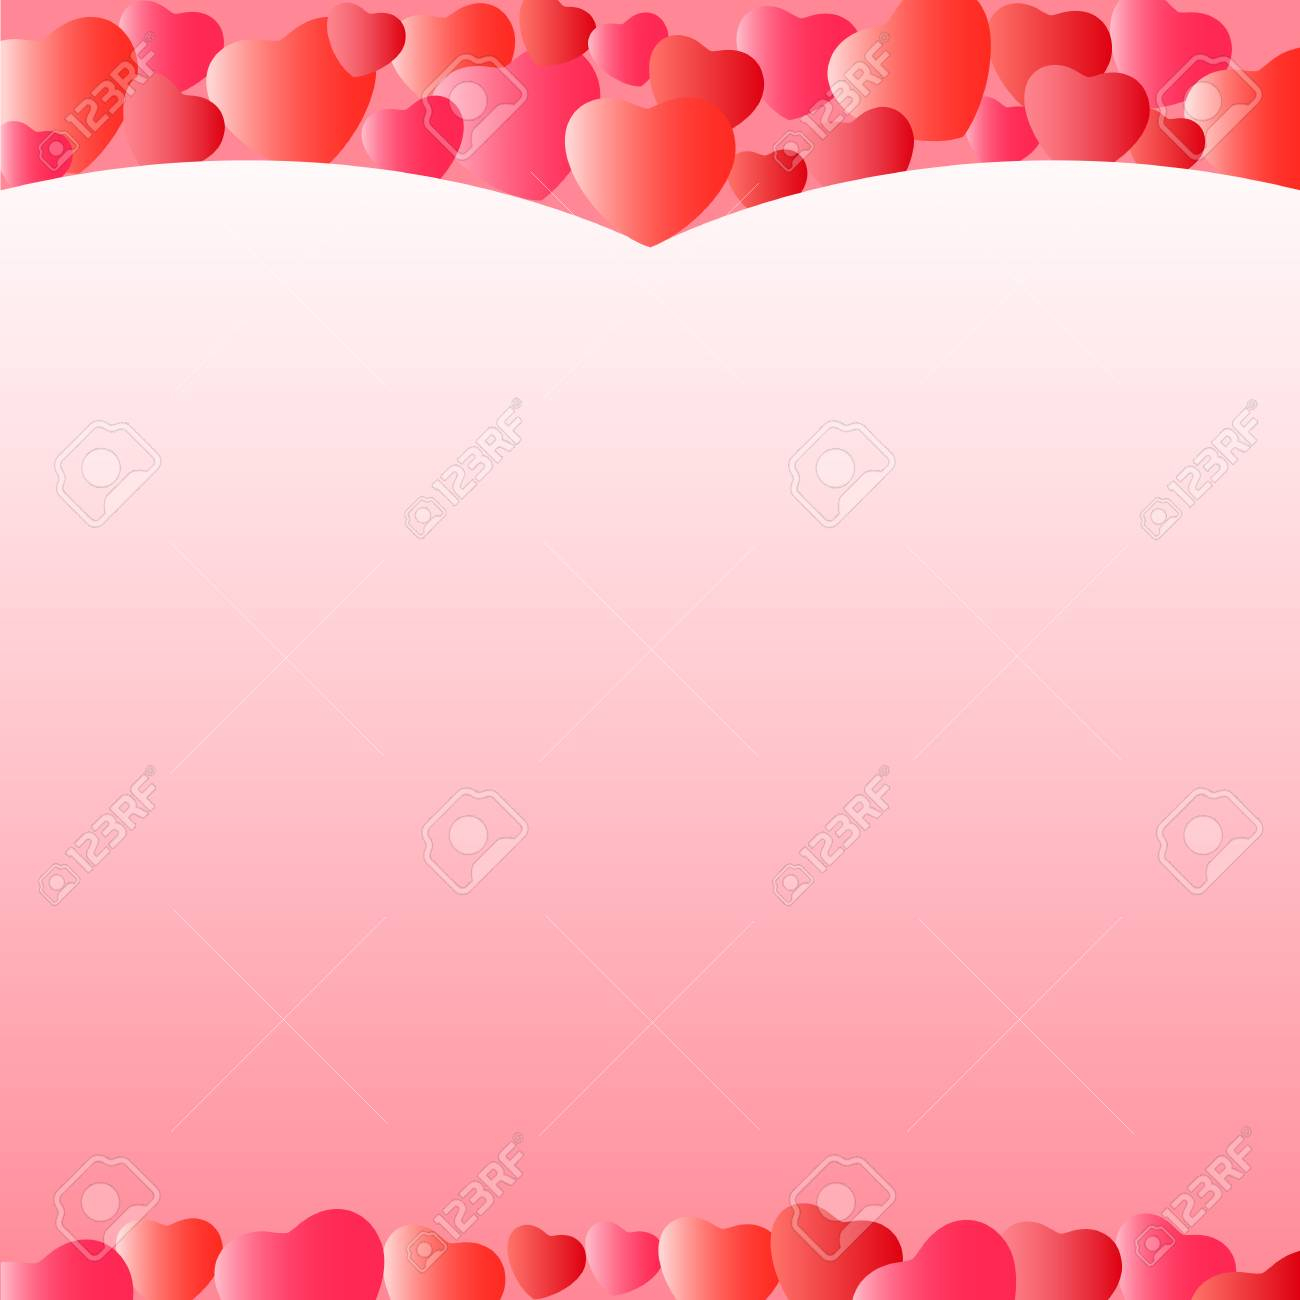 photo stock vector template for greeting cards for valentines day background with hearts wallpaper